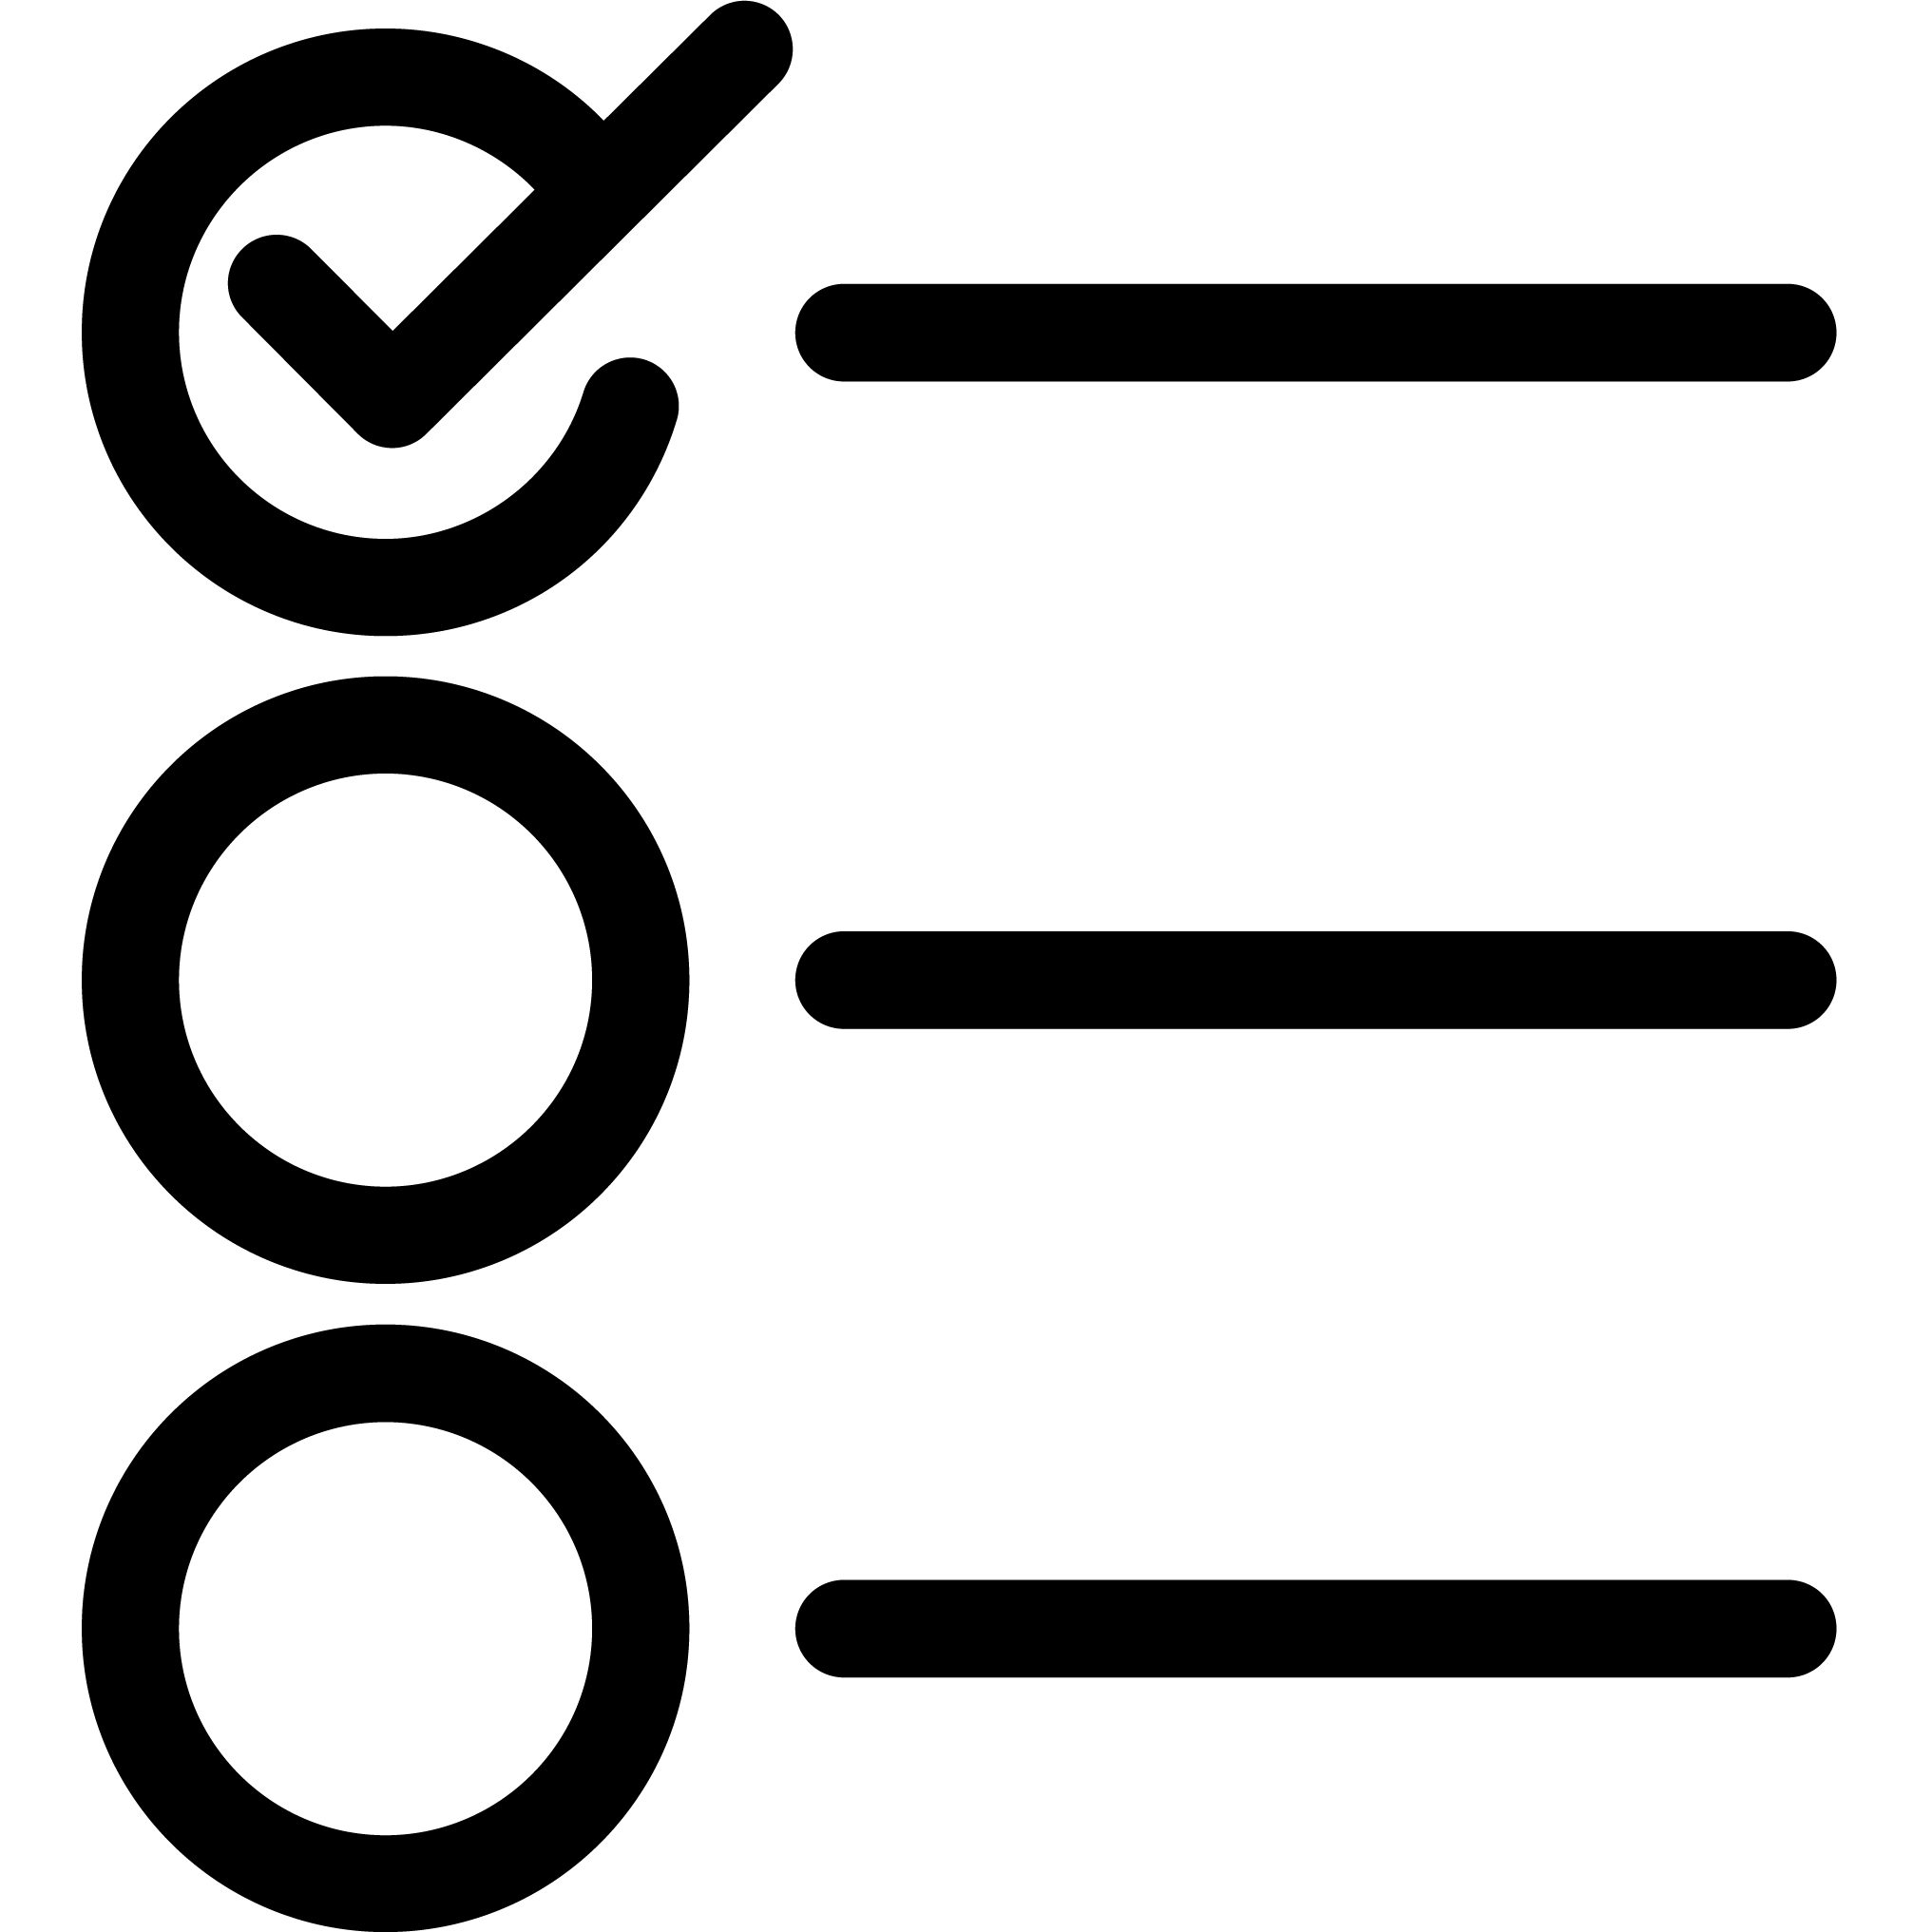 Automation Email 1 Webpage Icons-01.png